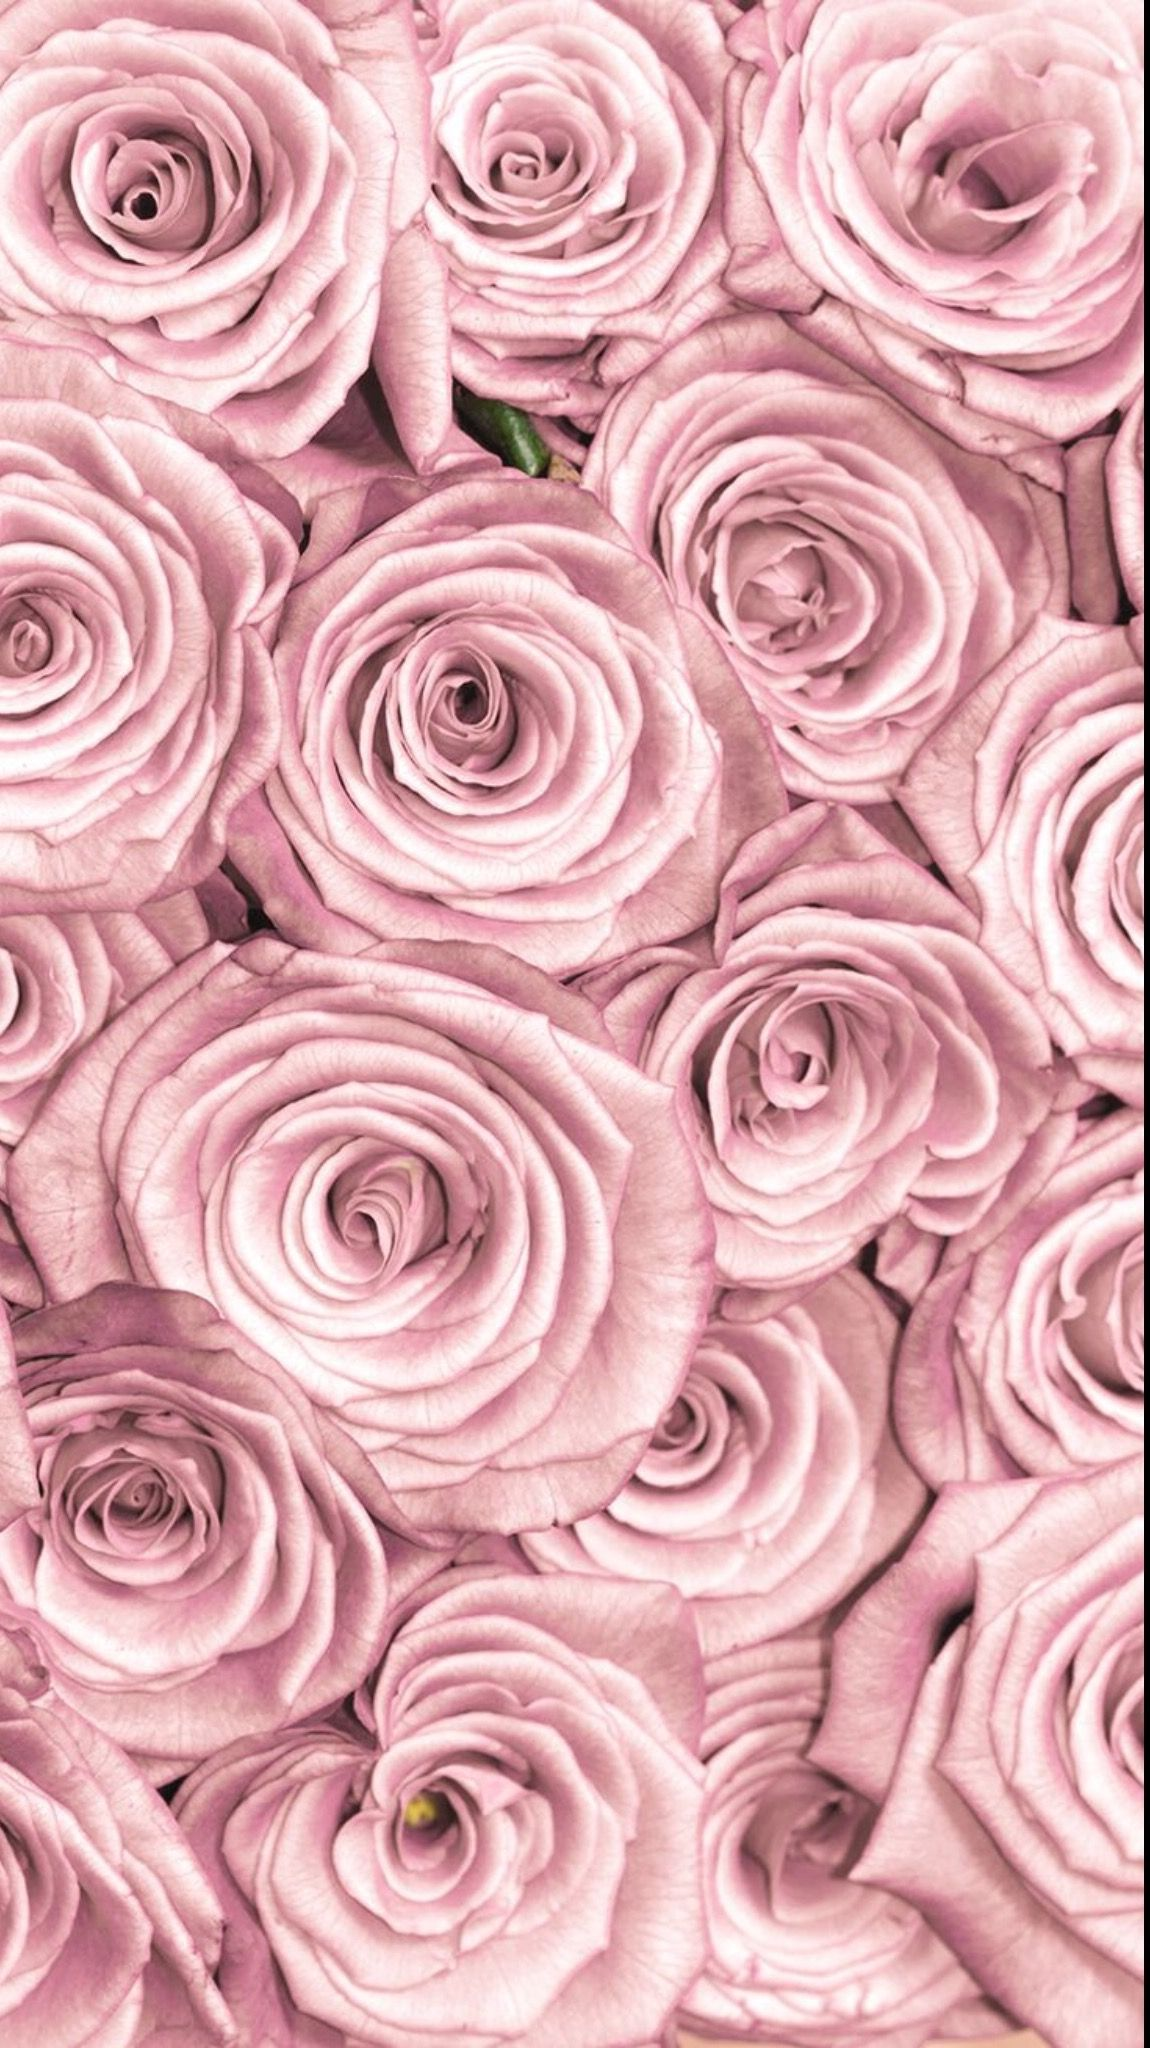 Flowers lockscreen rose gold rose gold wallpapers in - Rose gold background for iphone ...